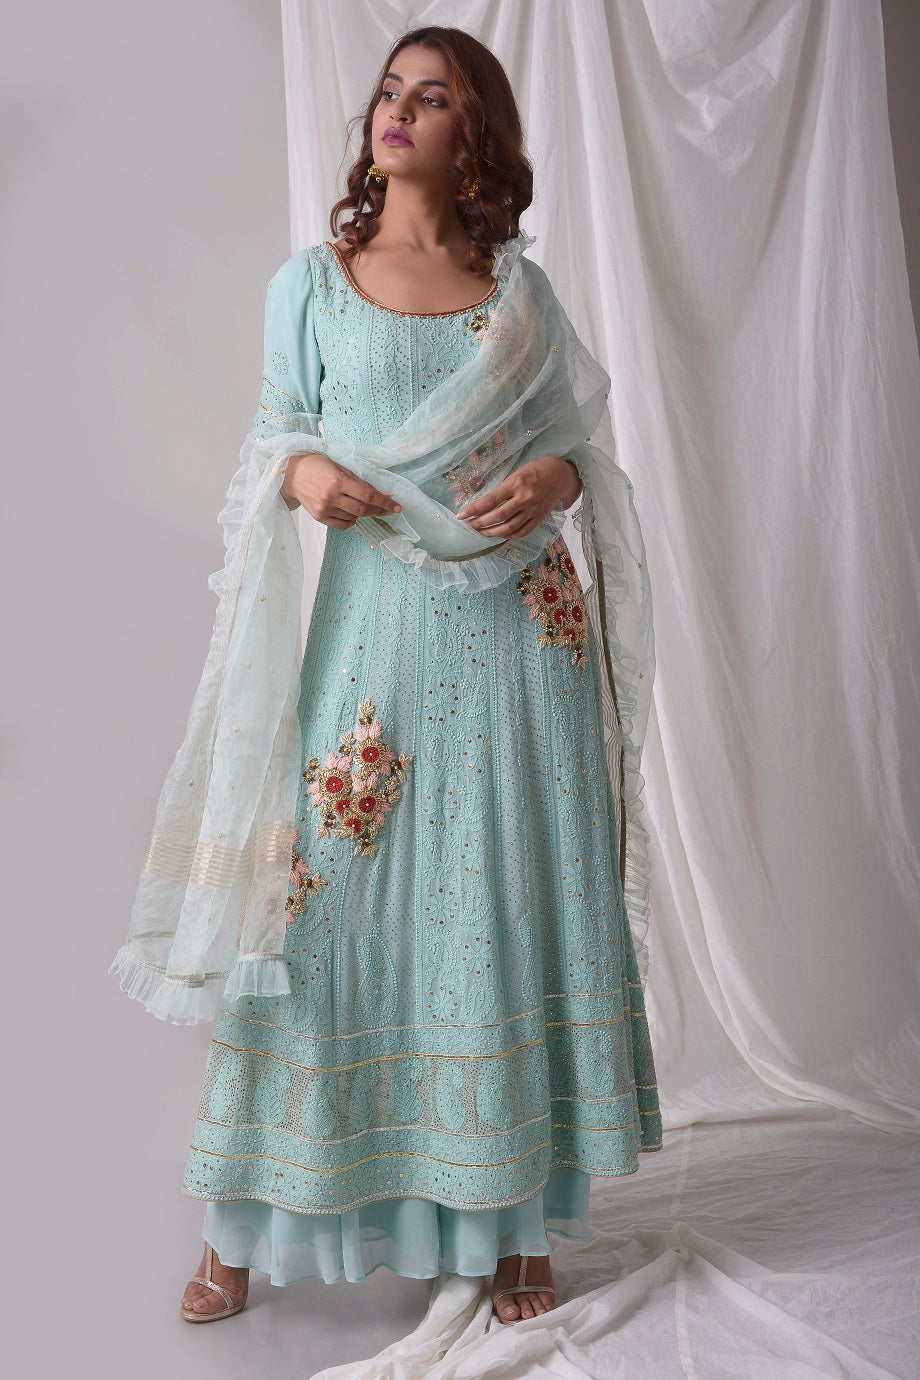 Aqua Blue Georgette Suit With Palazzo And Duppatta Online in USA-full view